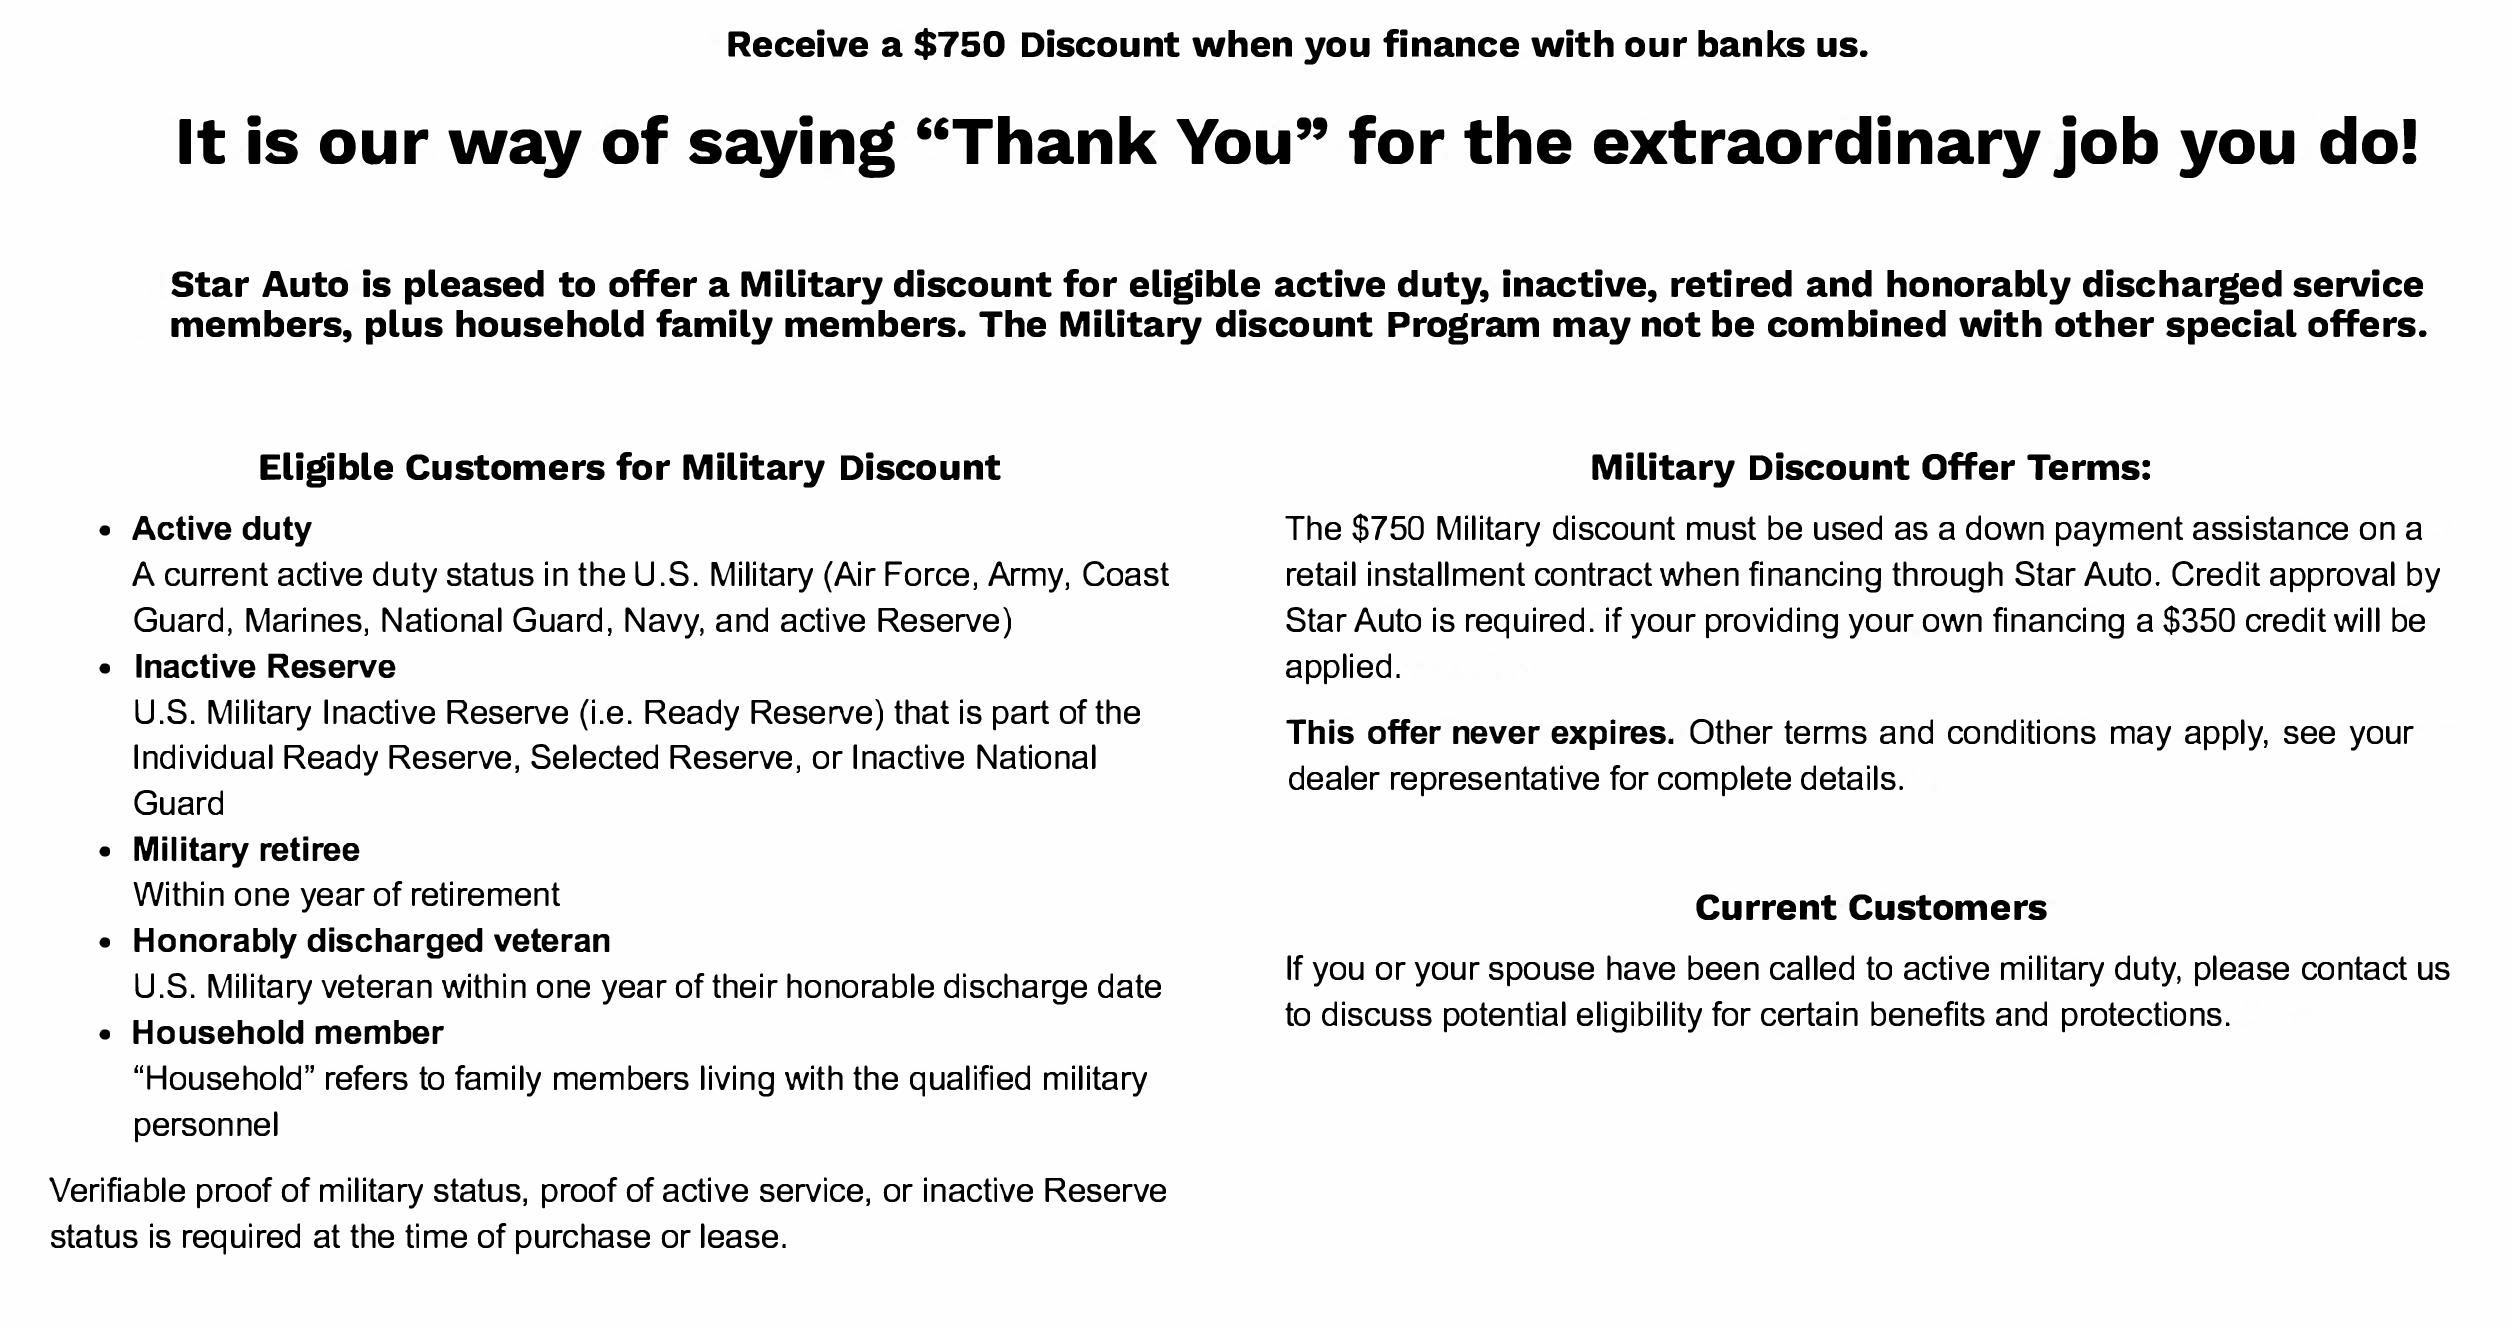 Military Discount - Star Auto